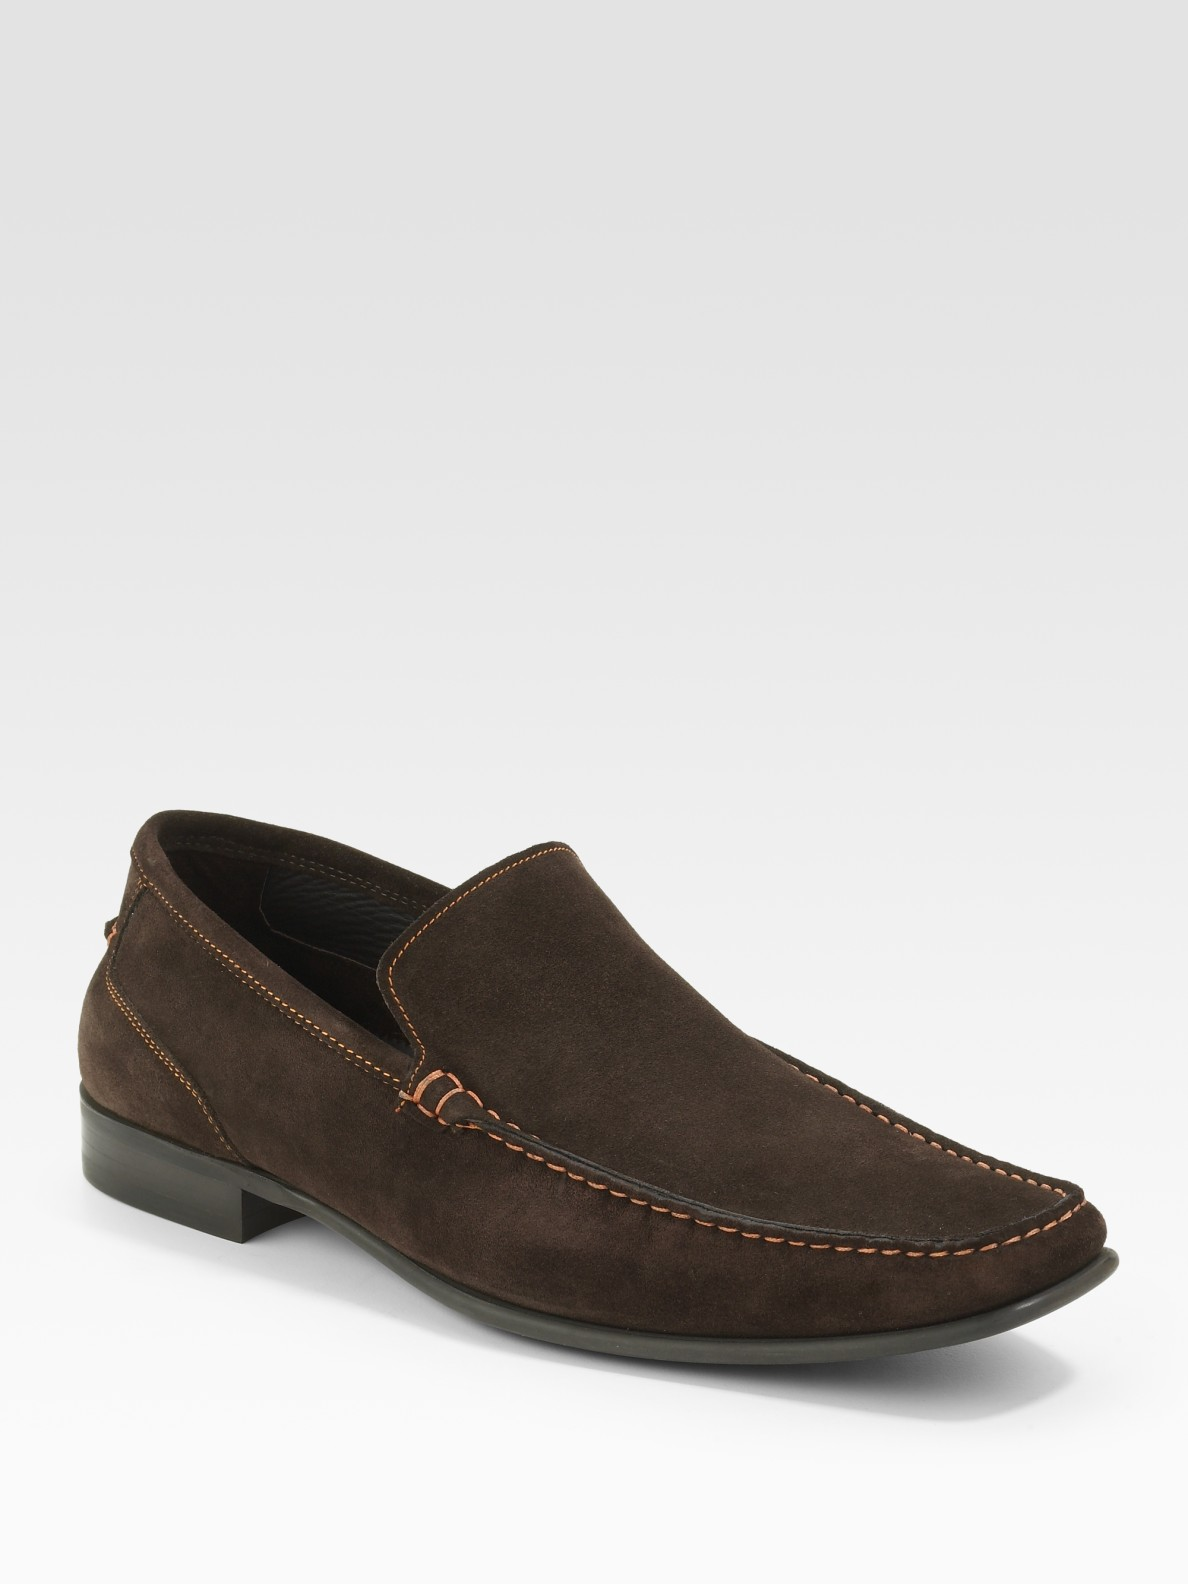 Lyst To Boot Suede Loafers In Brown For Men